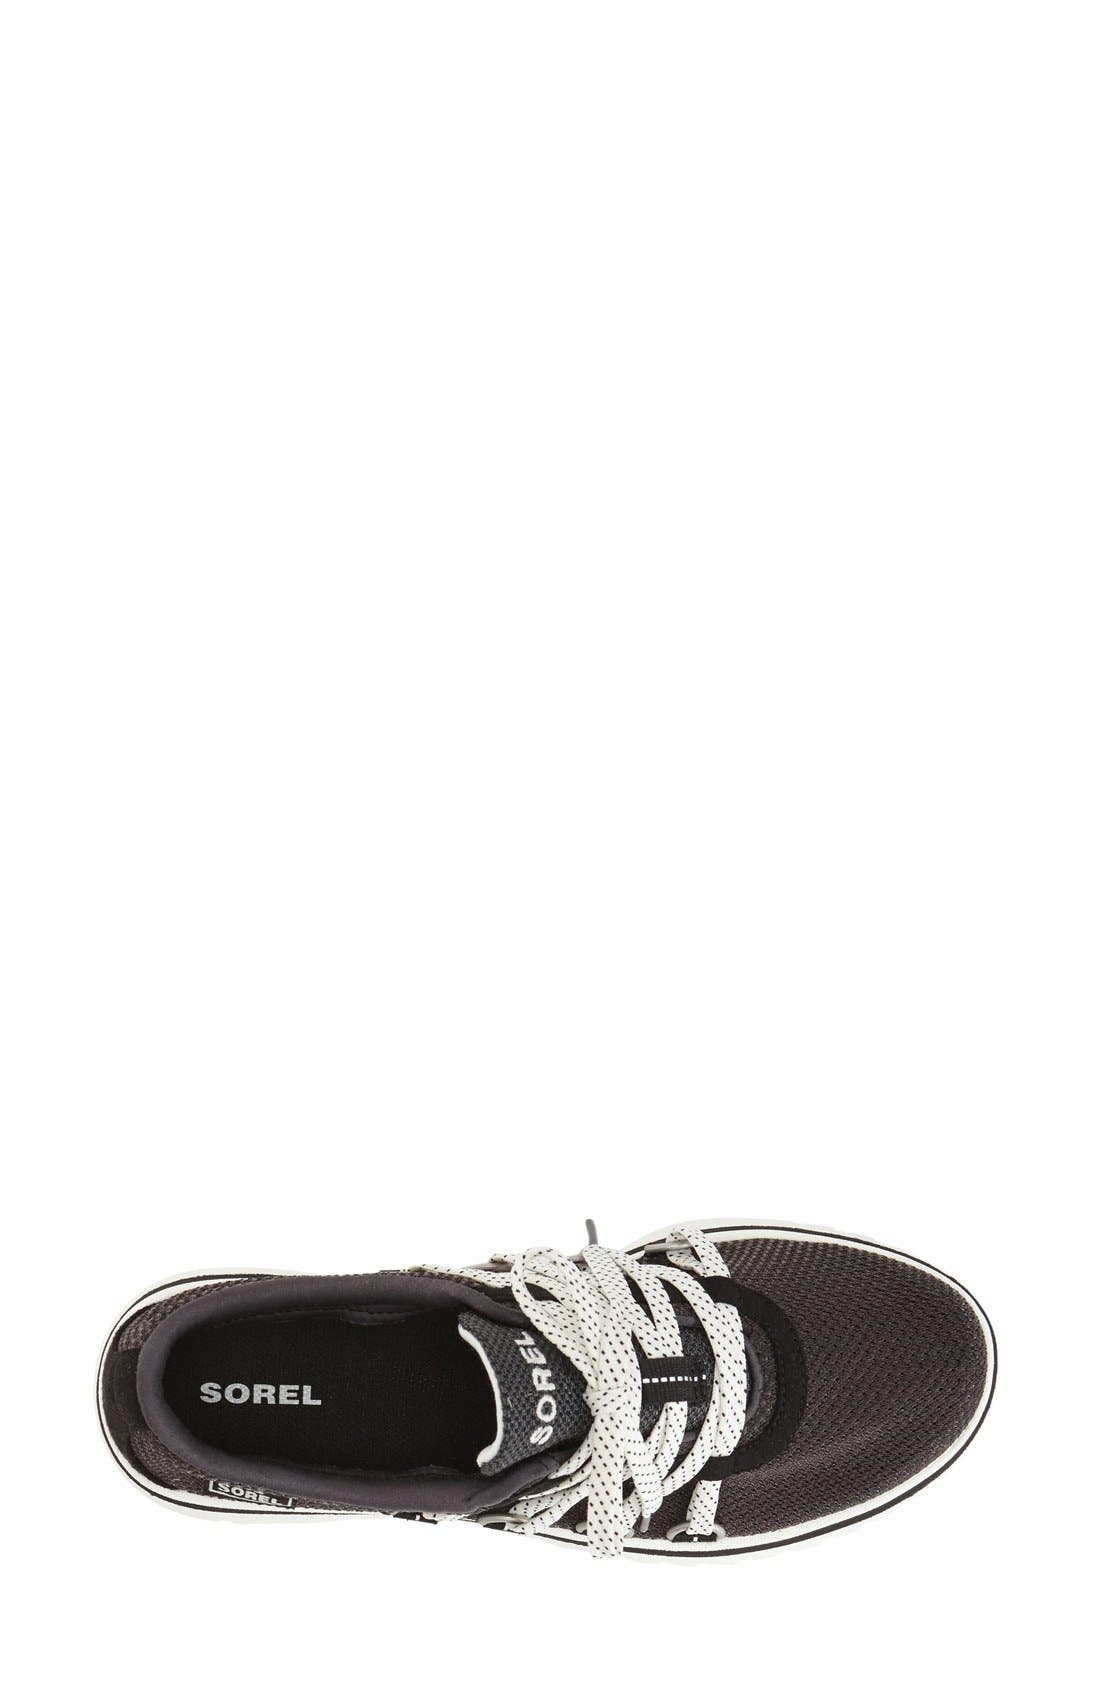 Alternate Image 3  - SOREL 'Tivoli Go' Sneaker (Women)